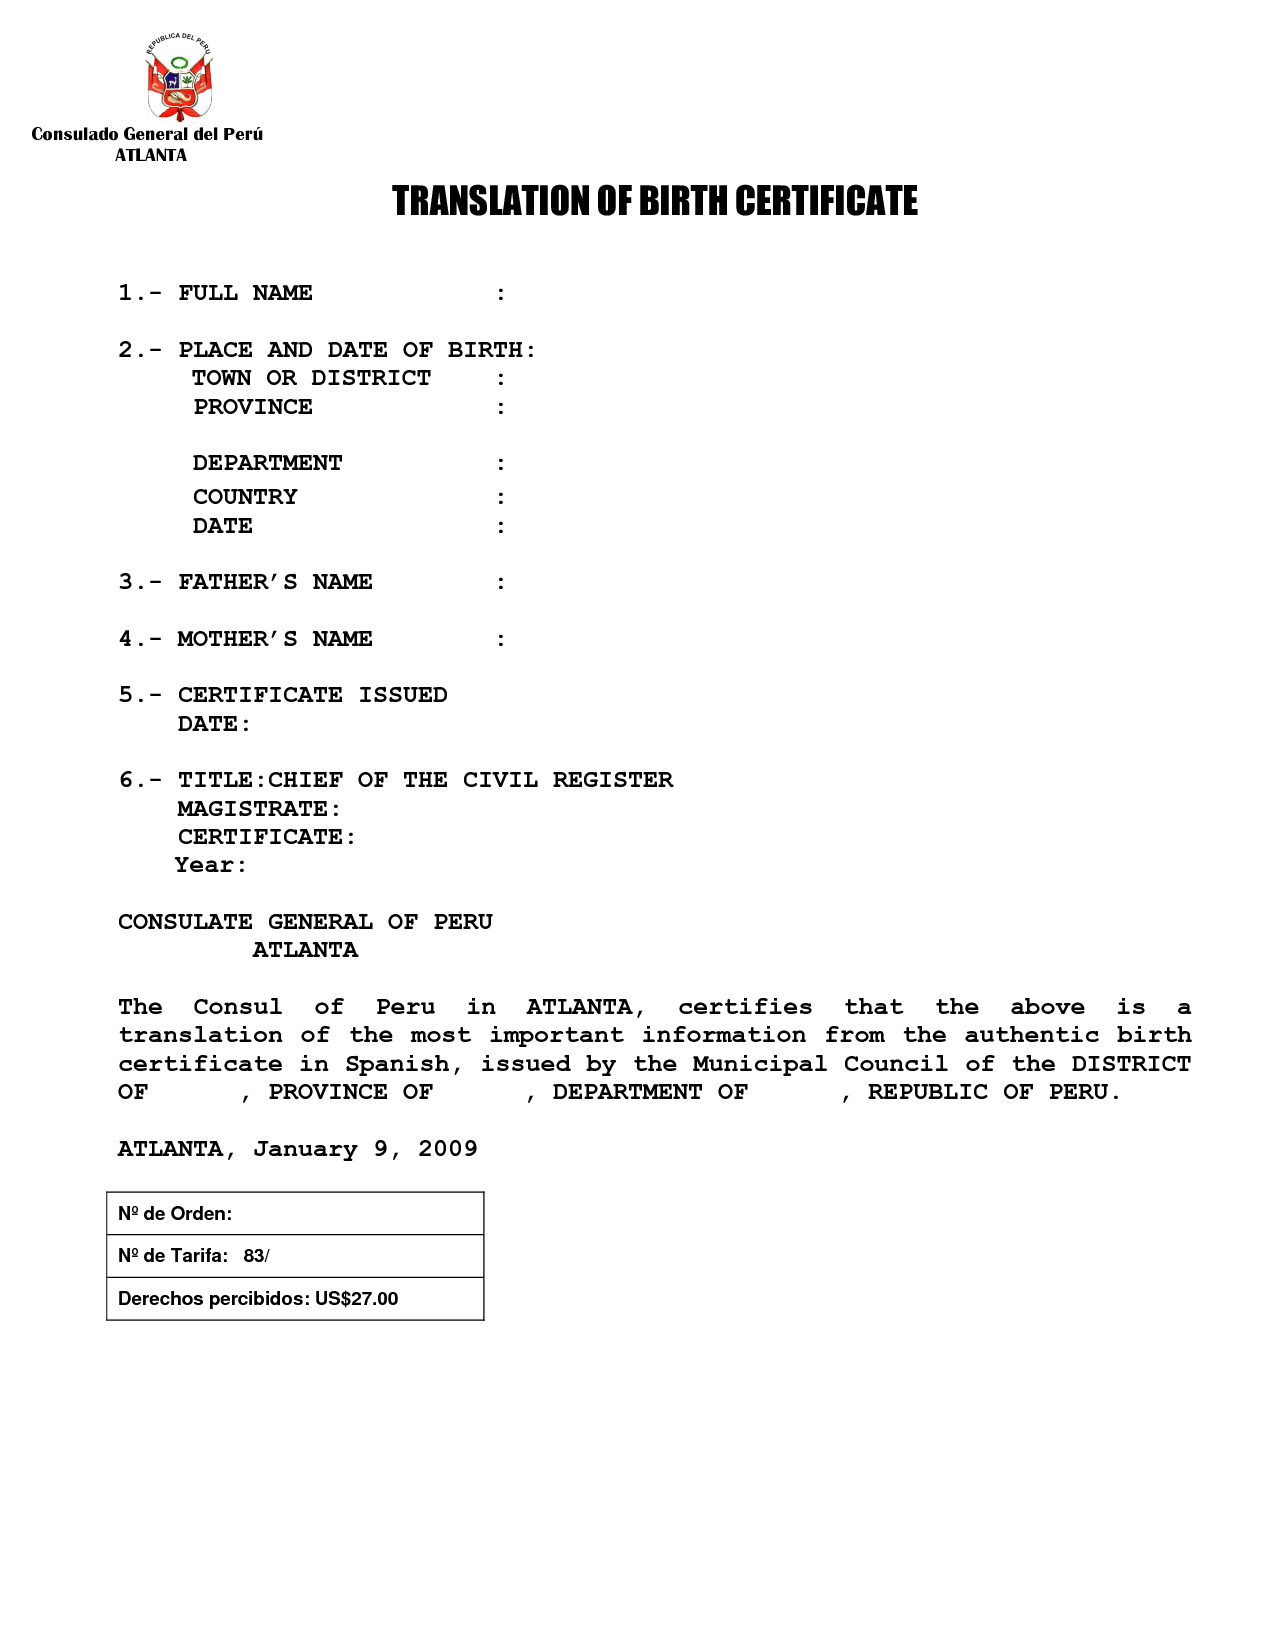 Death certificate translation template image collections spanish death certificate templates translation marriage template spanish death certificate templates translation marriage template alramifo image yadclub Images